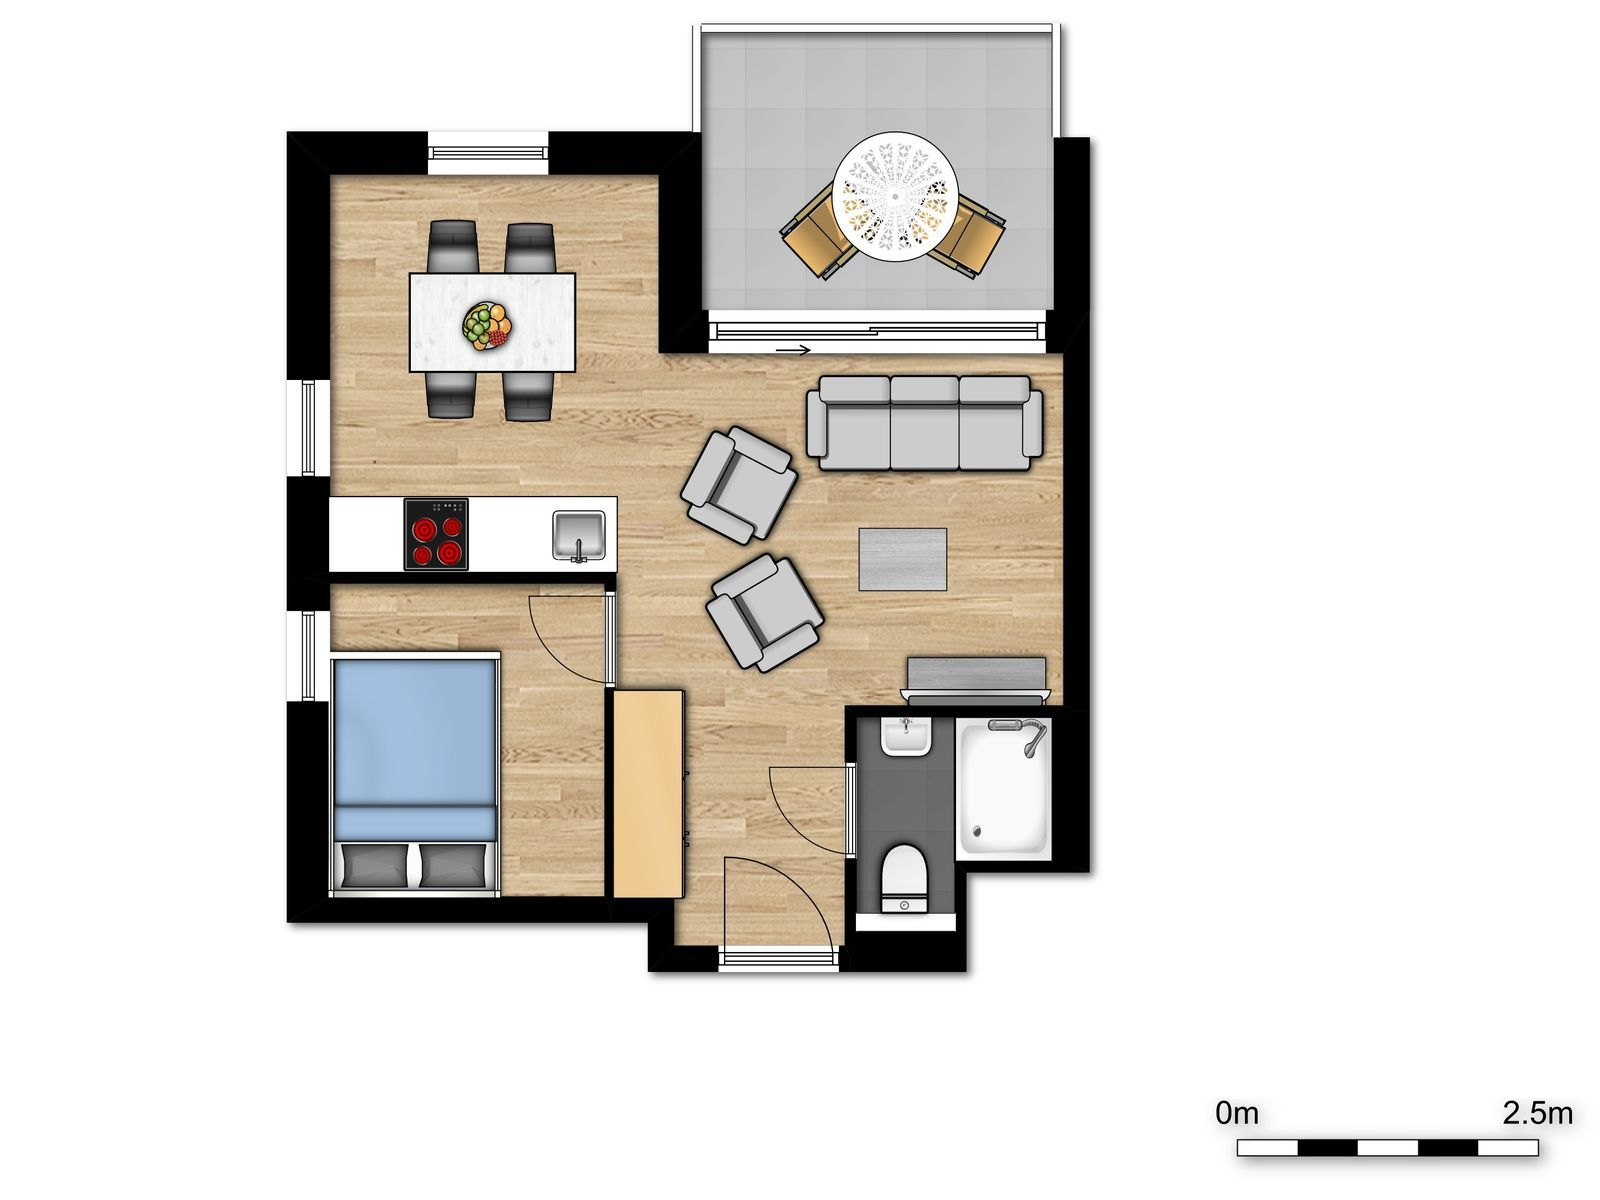 New Holiday Suite for 4 people with sofa bed and double bed